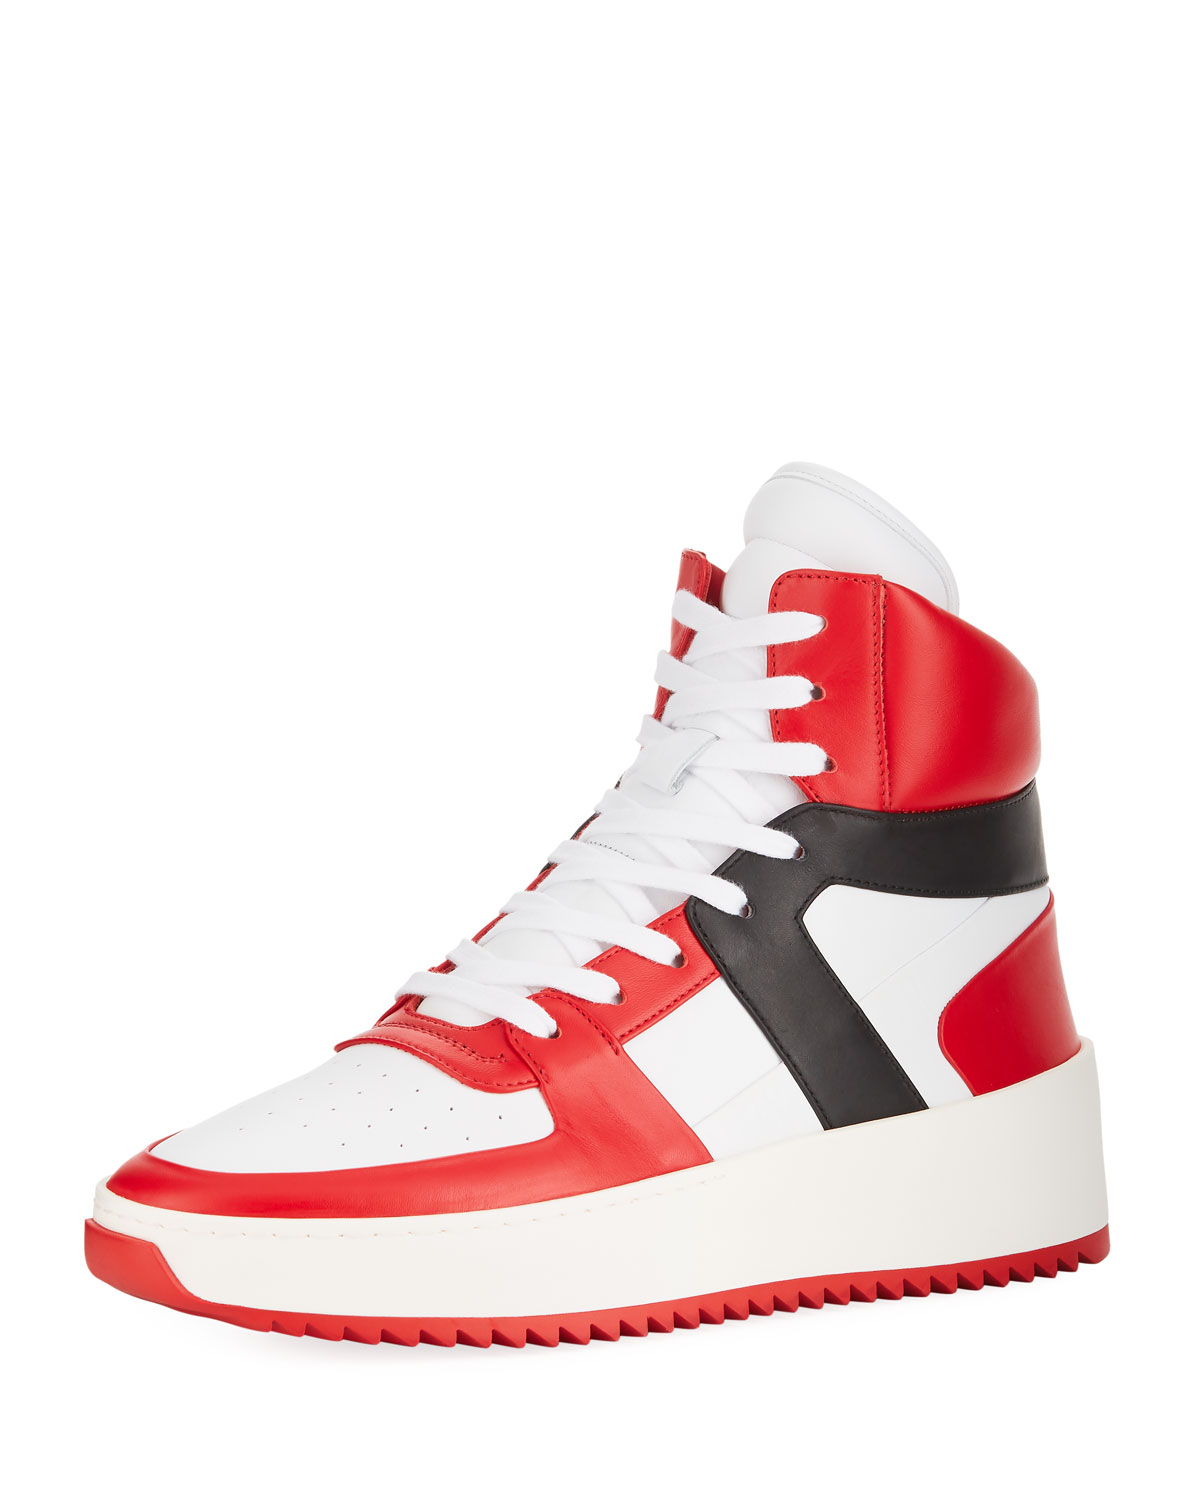 d2aabc48401 Fear of God Men s Tricolor Leather High-Top Basketball Sneakers ...